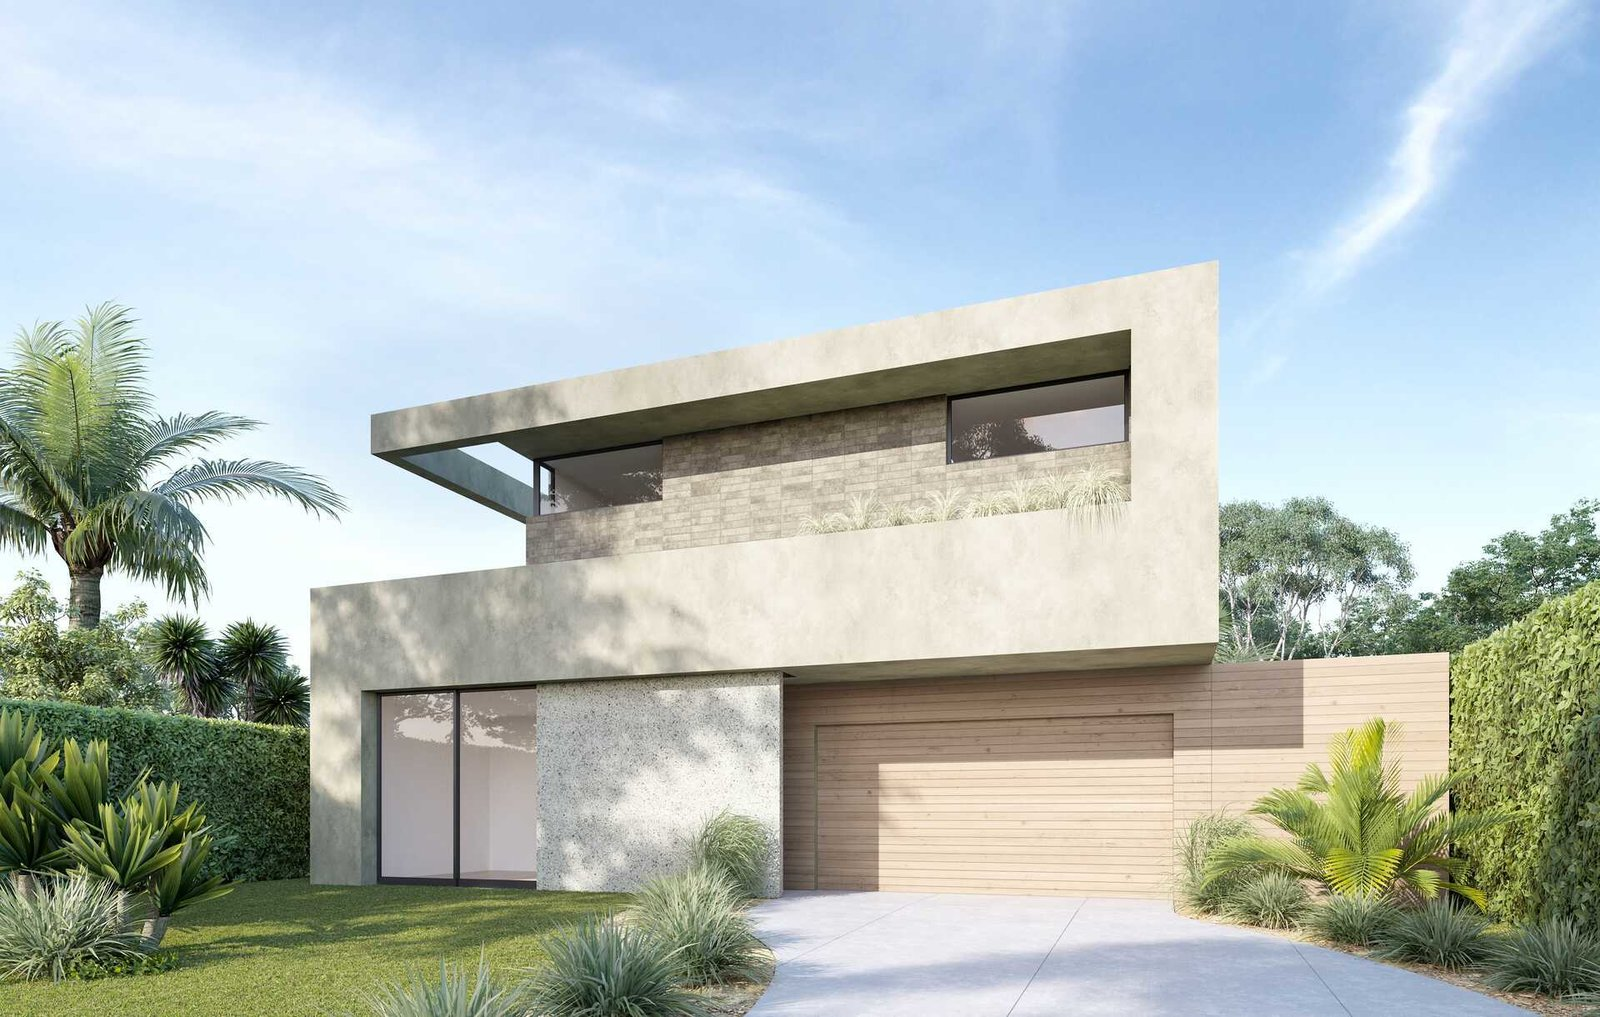 Exterior, Concrete Siding Material, House Building Type, Flat RoofLine, and Stone Siding Material  A Newly-Built Modern Hilltop Home in Mar Vista